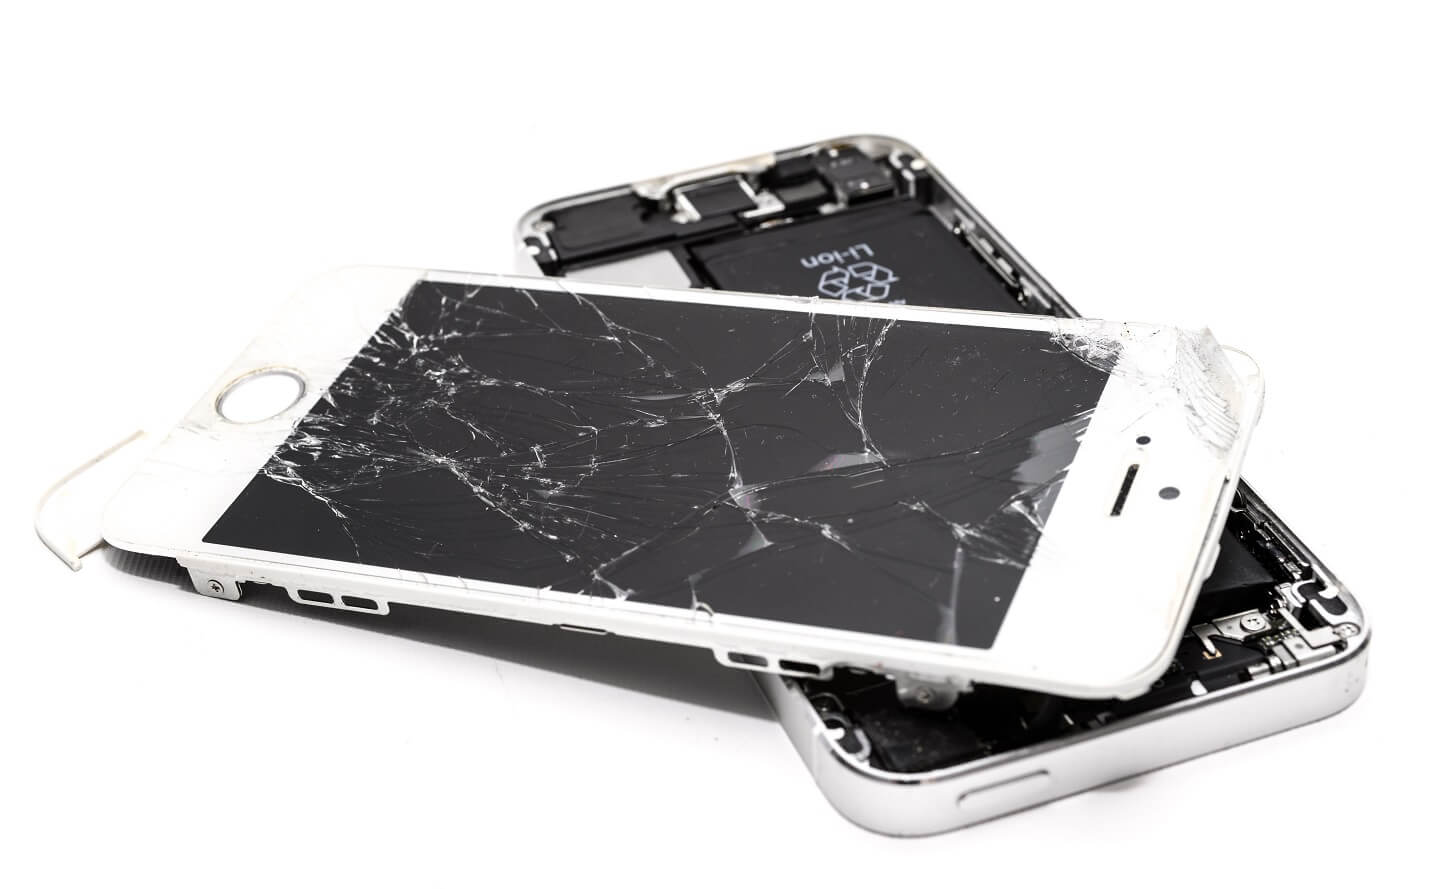 A white iphone taken apart and with a cracked screen.